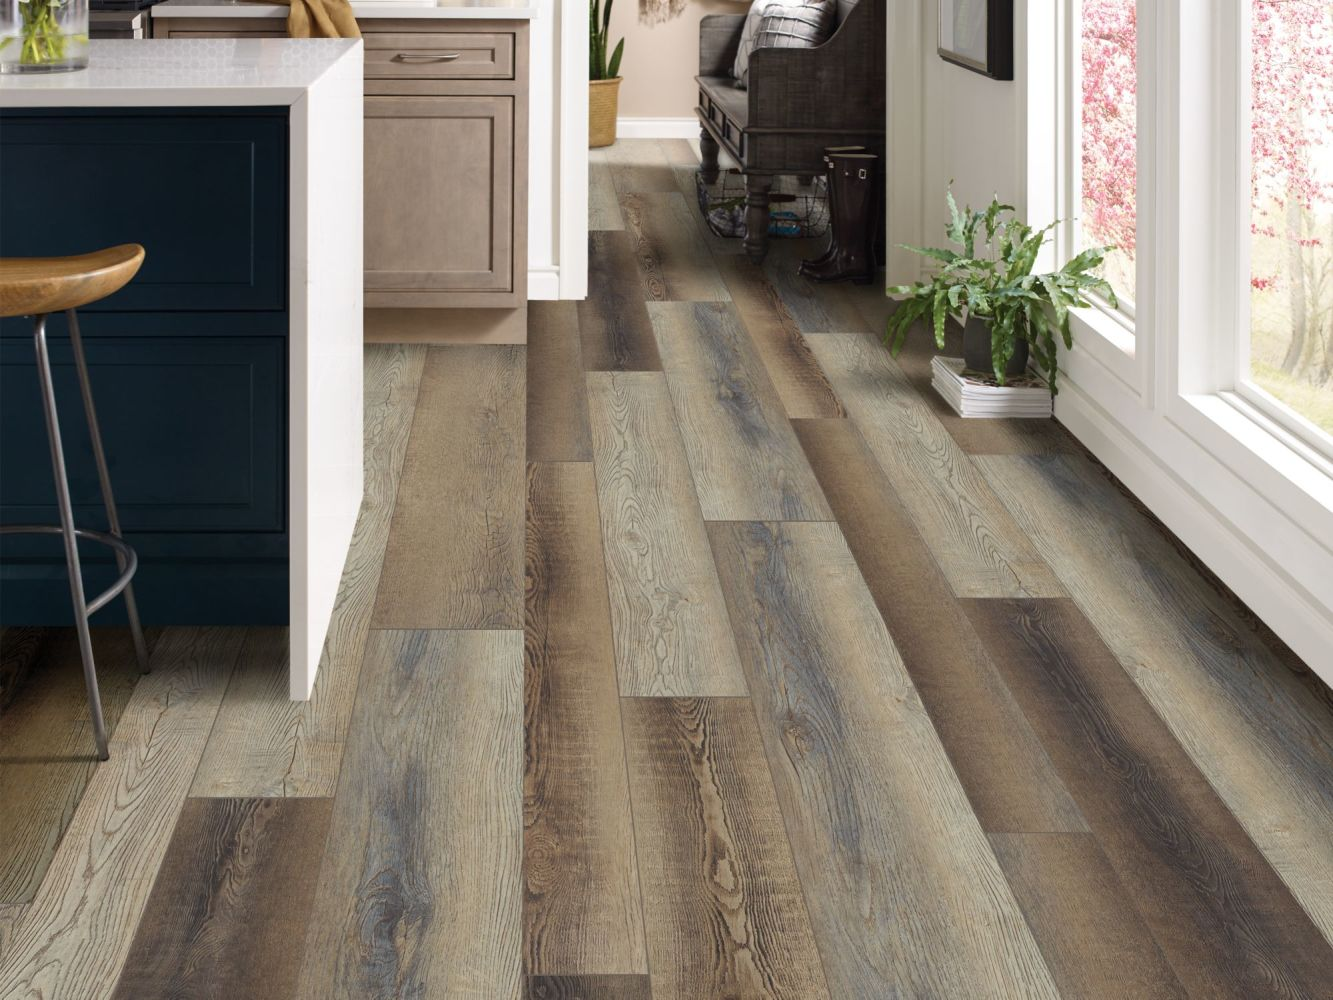 Shaw Floors Resilient Property Solutions Resolute Mix Plus Brush Oak 07033_VE279